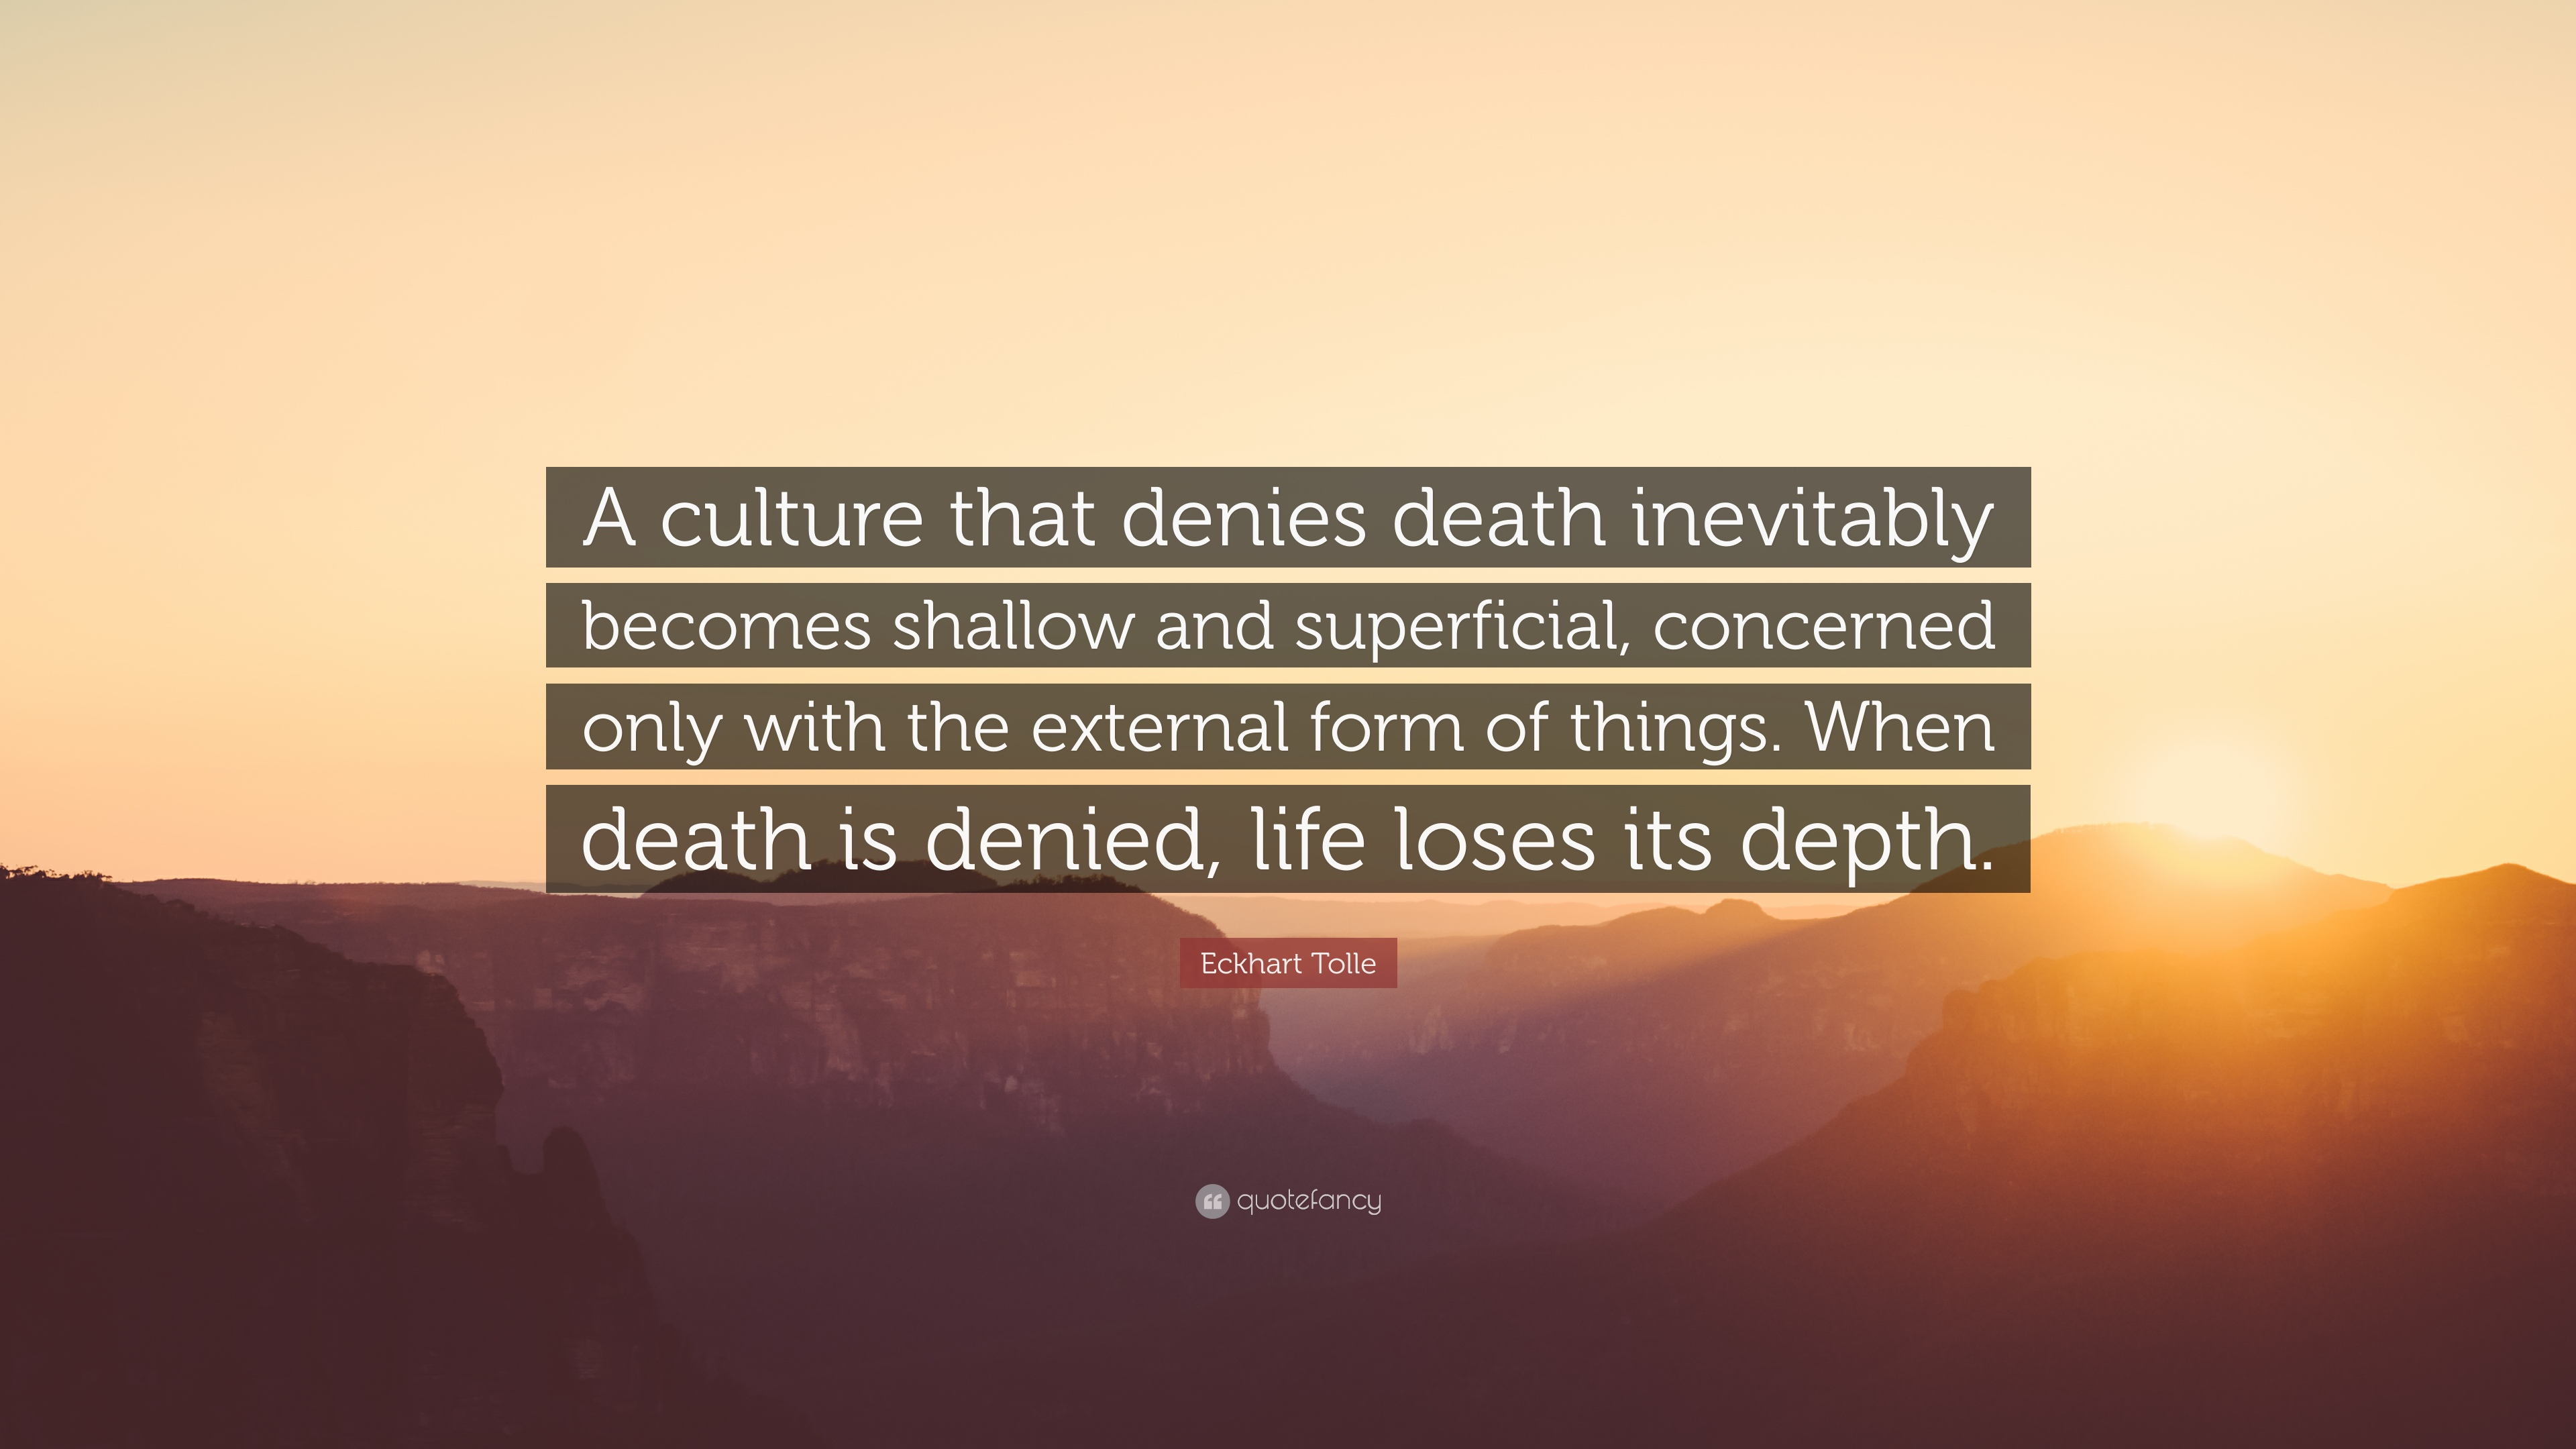 People from another culture & their experience with death?